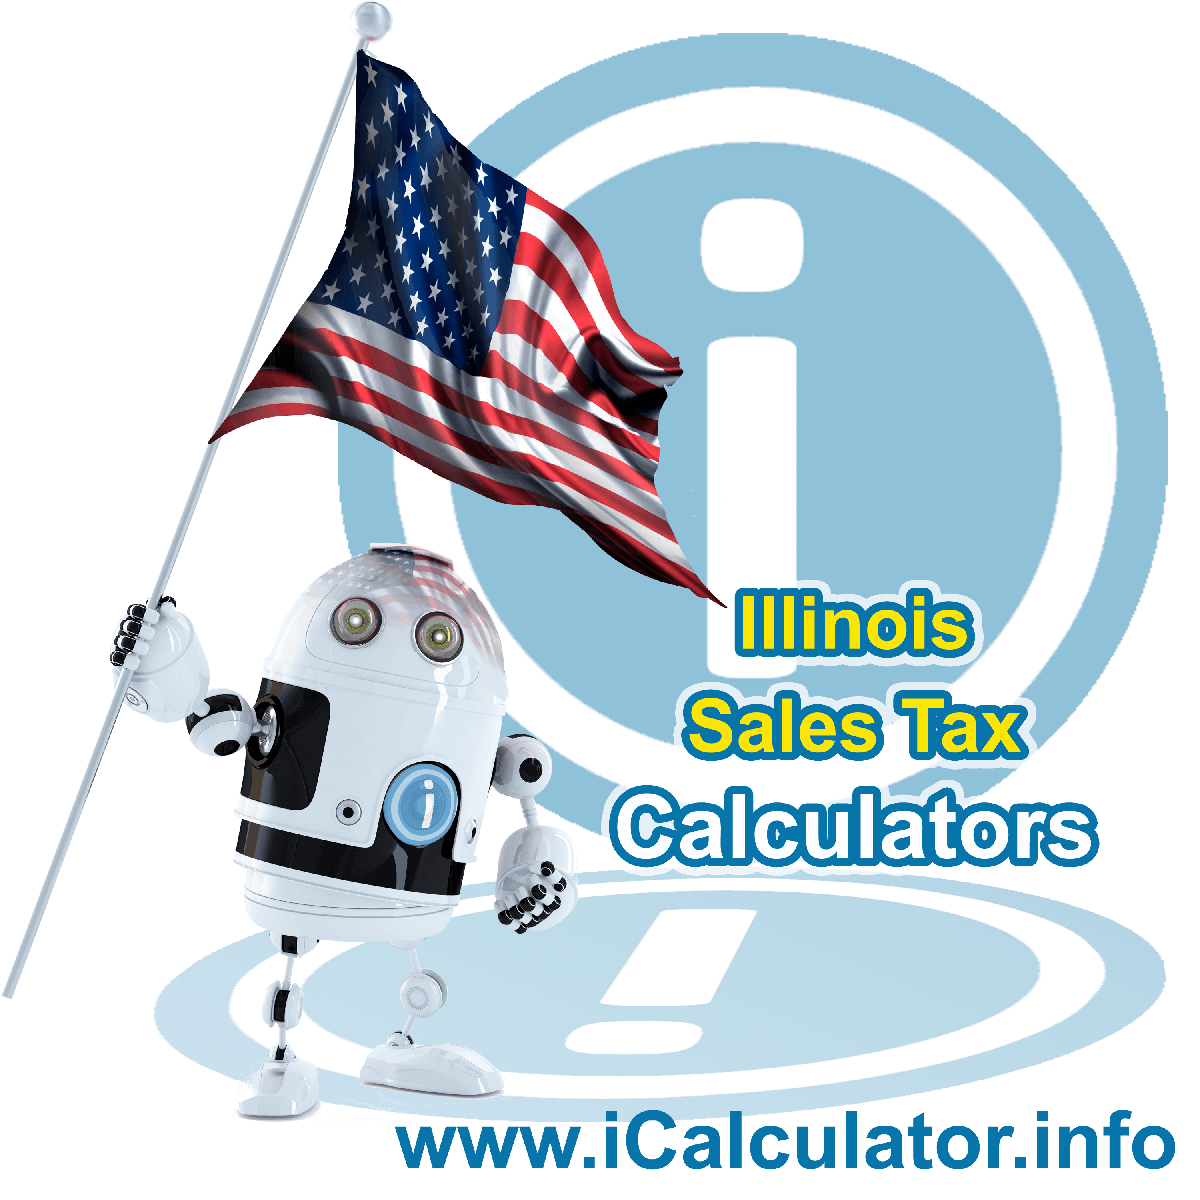 Marengo Sales Rates: This image illustrates a calculator robot calculating Marengo sales tax manually using the Marengo Sales Tax Formula. You can use this information to calculate Marengo Sales Tax manually or use the Marengo Sales Tax Calculator to calculate sales tax online.